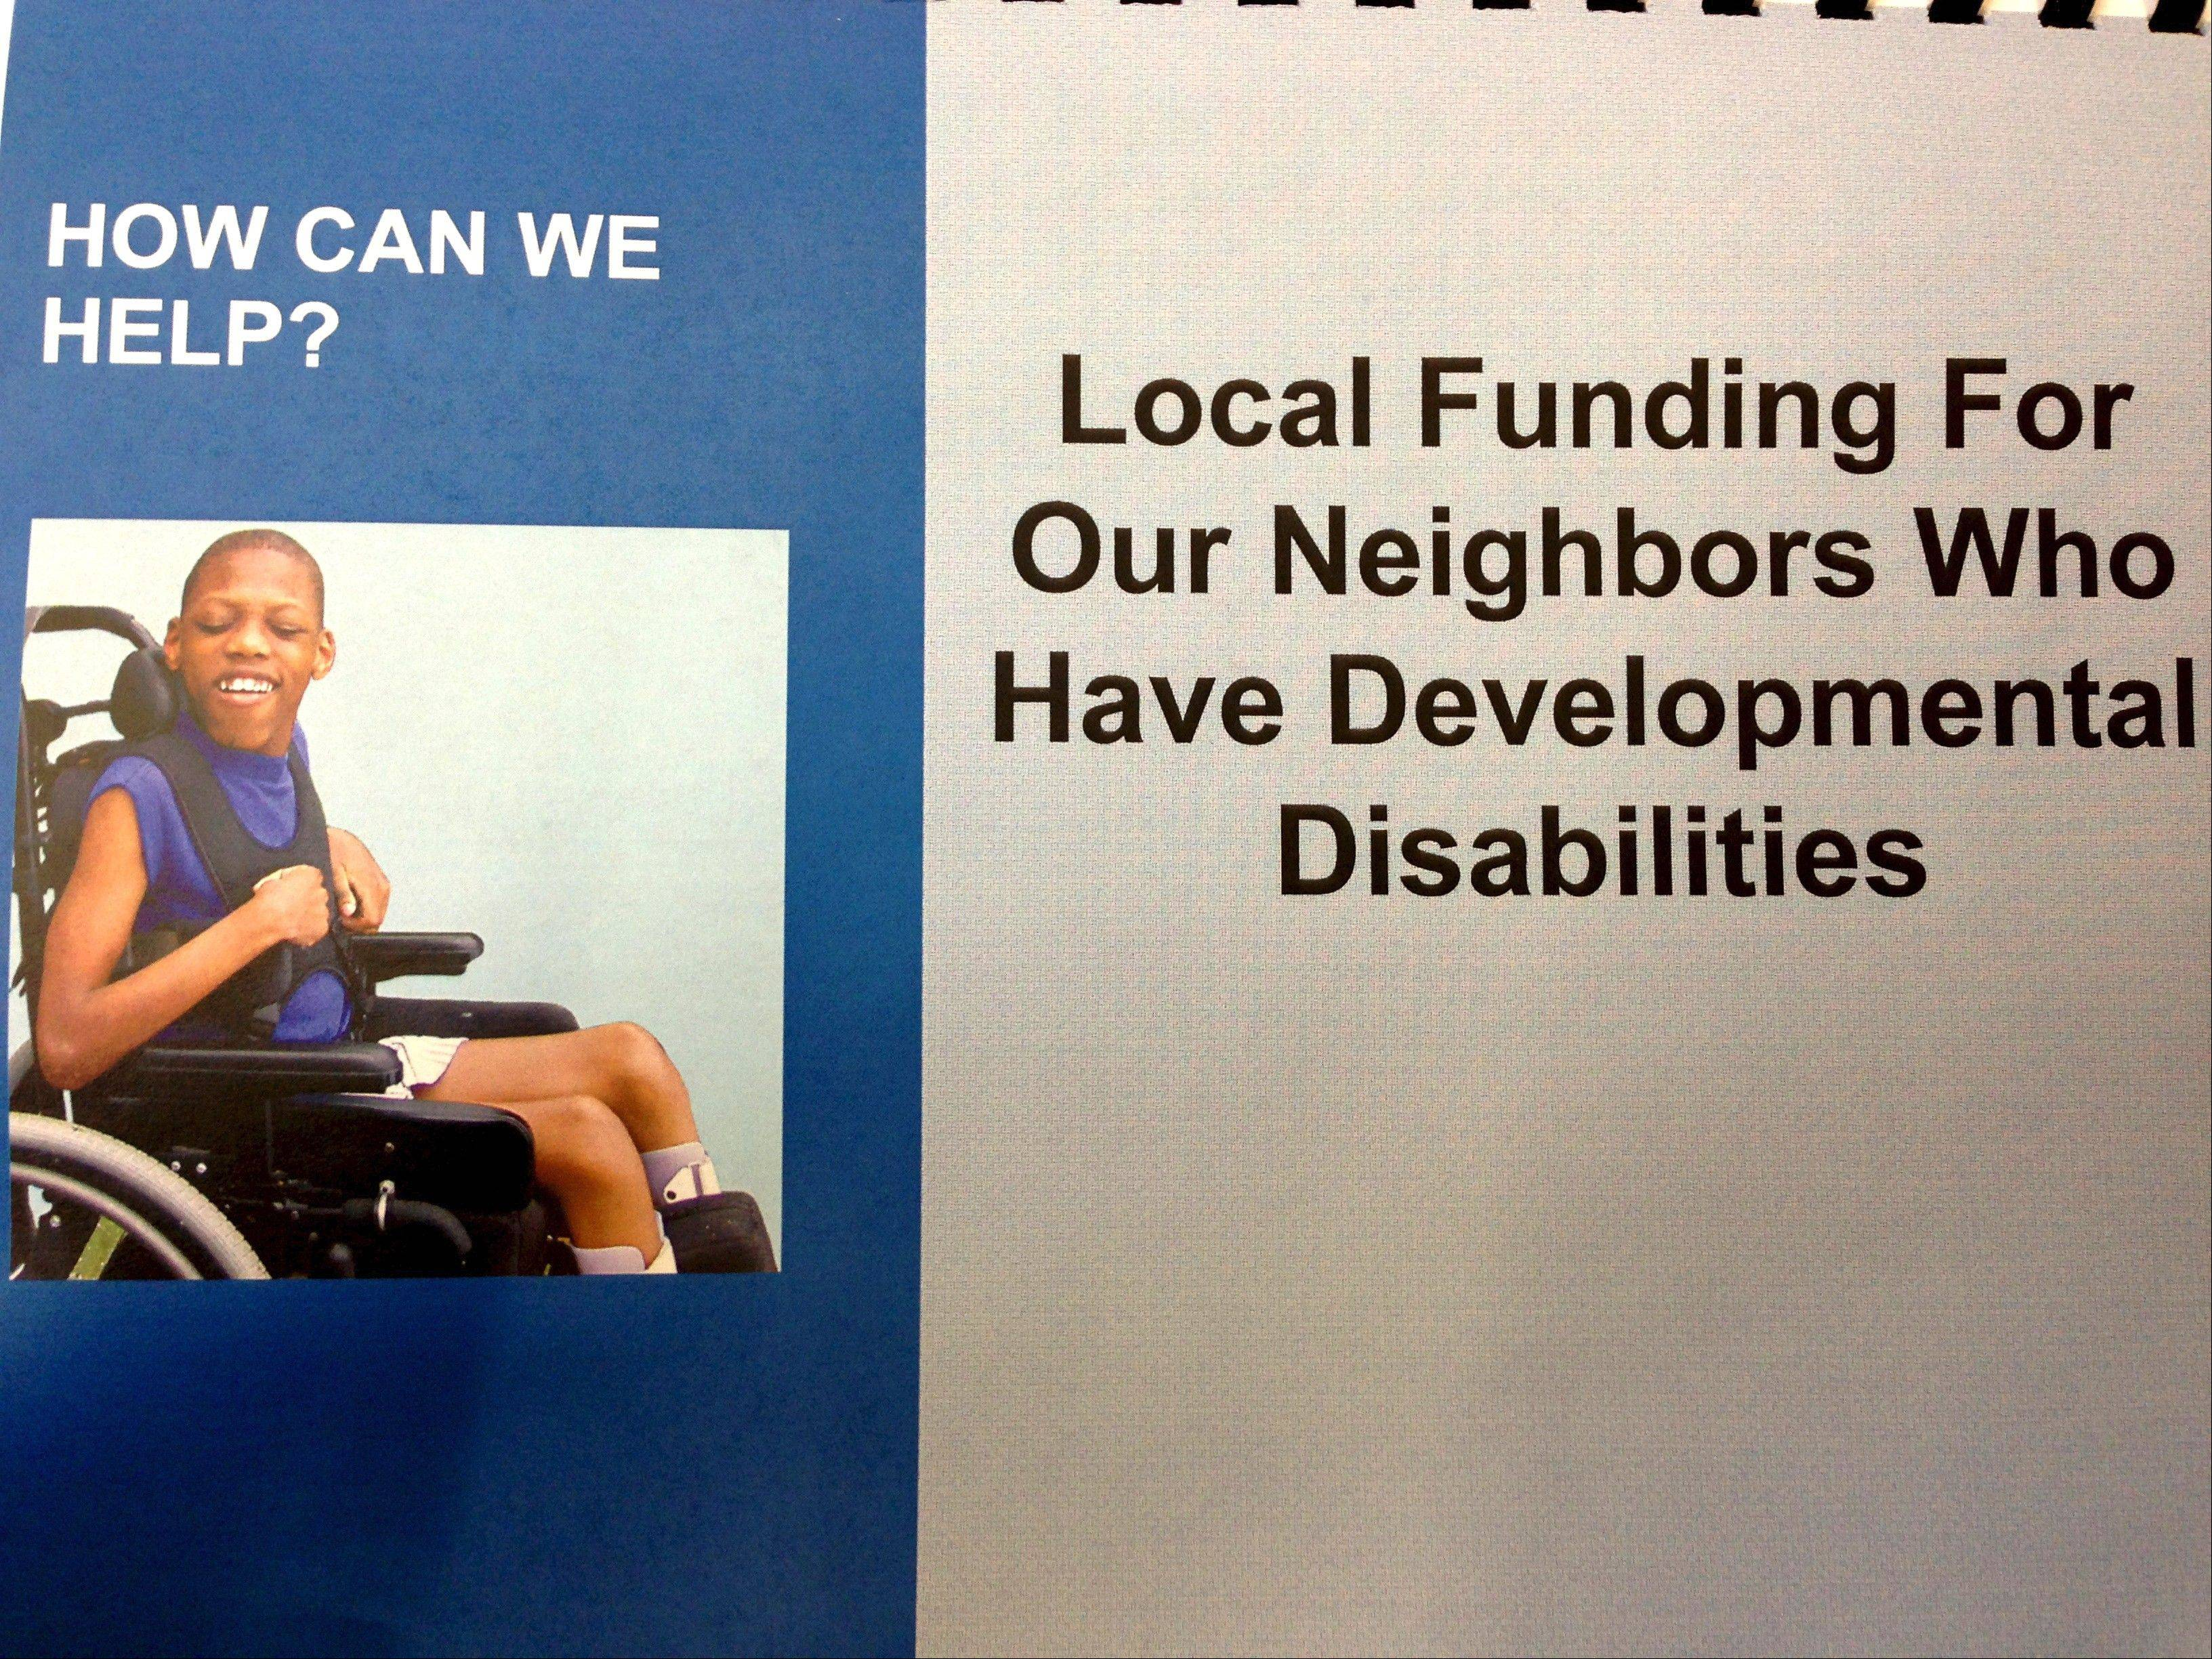 Local social service agencies pitched a preliminary plan to create a new property tax throughout Kane County to help disabled residents. Kane County voters would have to approve the levy through a referendum vote, most likely this spring.